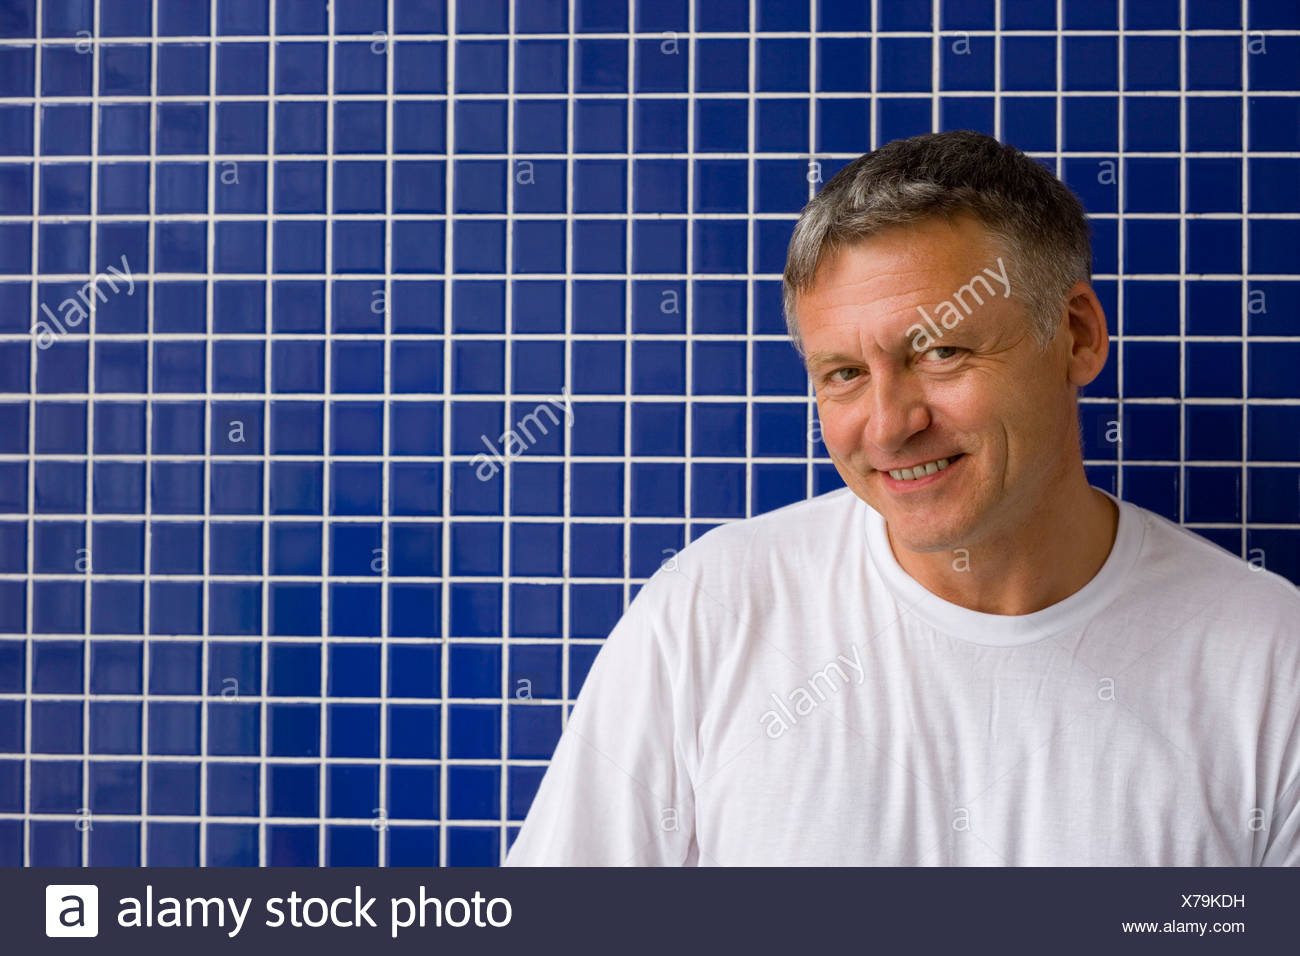 Mature man by tiles on wall, smiling, portrait, close-up - Stock Image